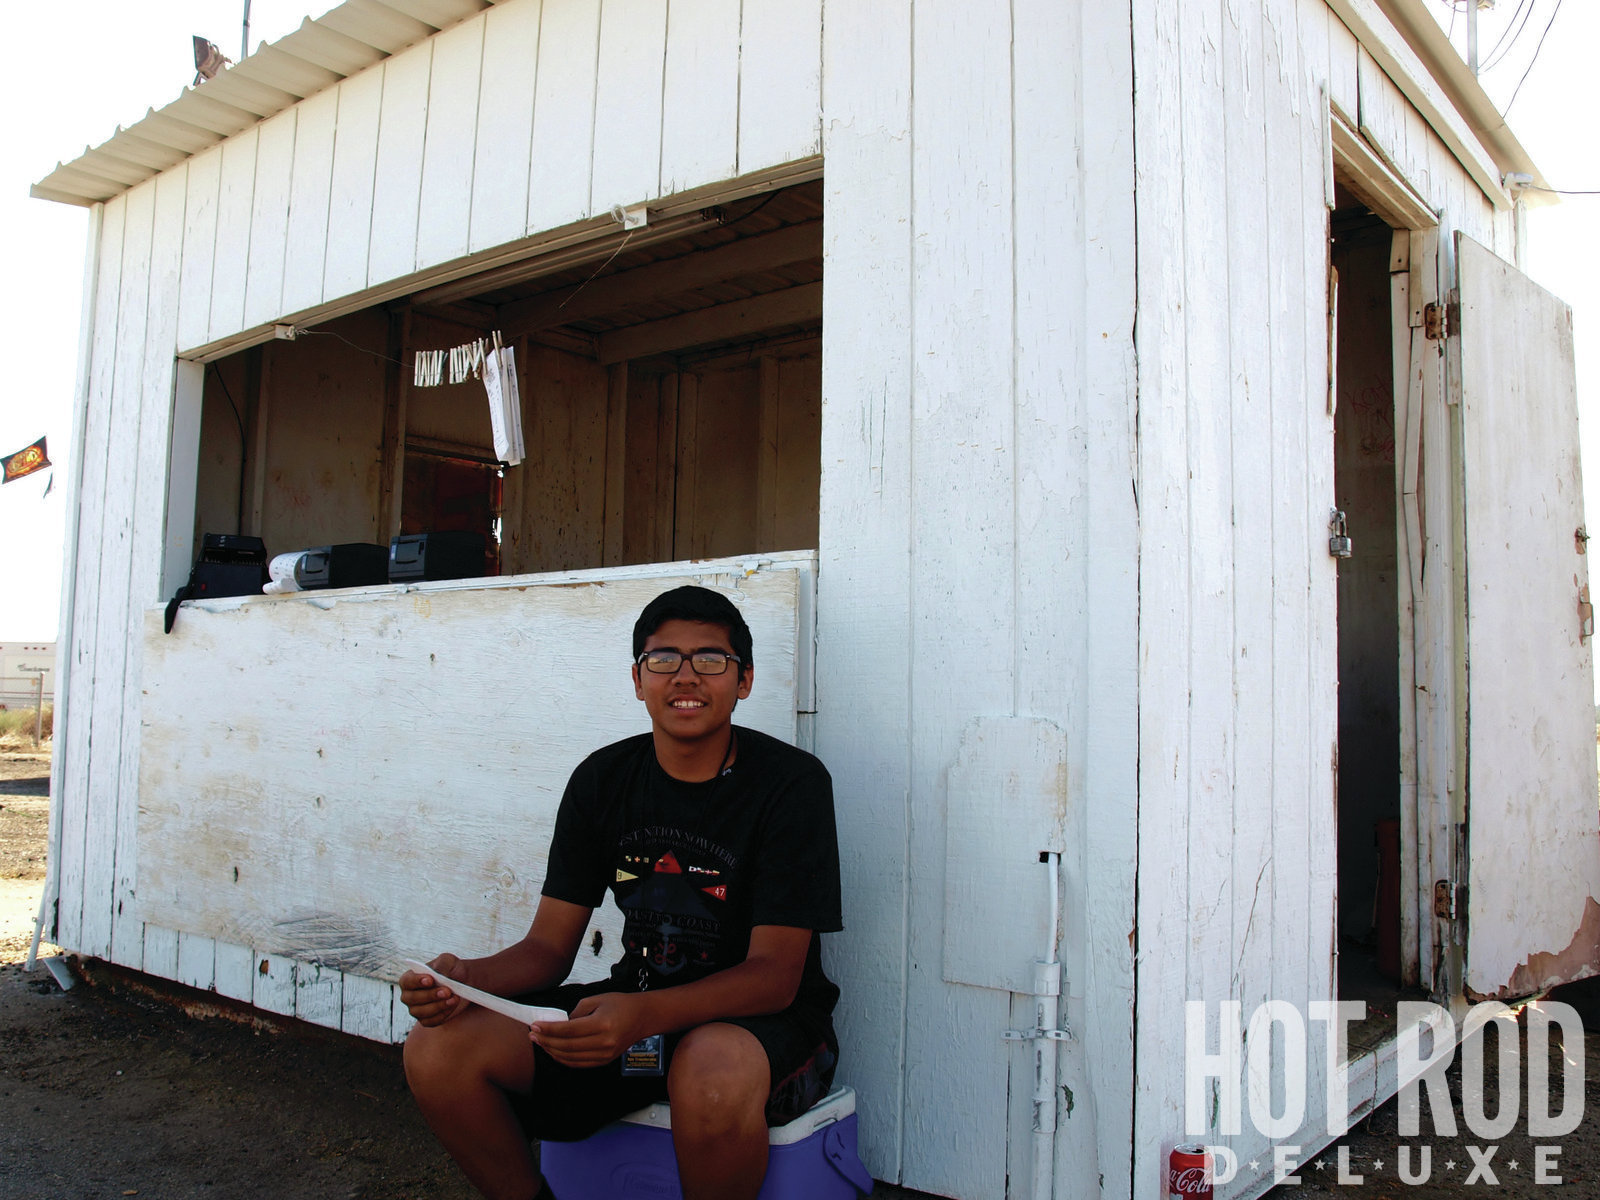 "Meet Chris Castillo, a 17-year-old senior at Bakersfield's Stockdale High School, who started out working Famoso's water box last March and has graduated to running the e.t. shack. Chris digs the interaction with racers: ""It's nice to see the happy ones. Some are so happy to win that they cry! My favorite class is A/Gas; the cars are fast [7.60 index], and they're cool. I'd like to run a sportsman car someday, and work my way up to A/Gas."" Rest easy, America, drag racing's future is just waiting its turn. Big surprise: Chris's dad and uncle both spin wrenches."